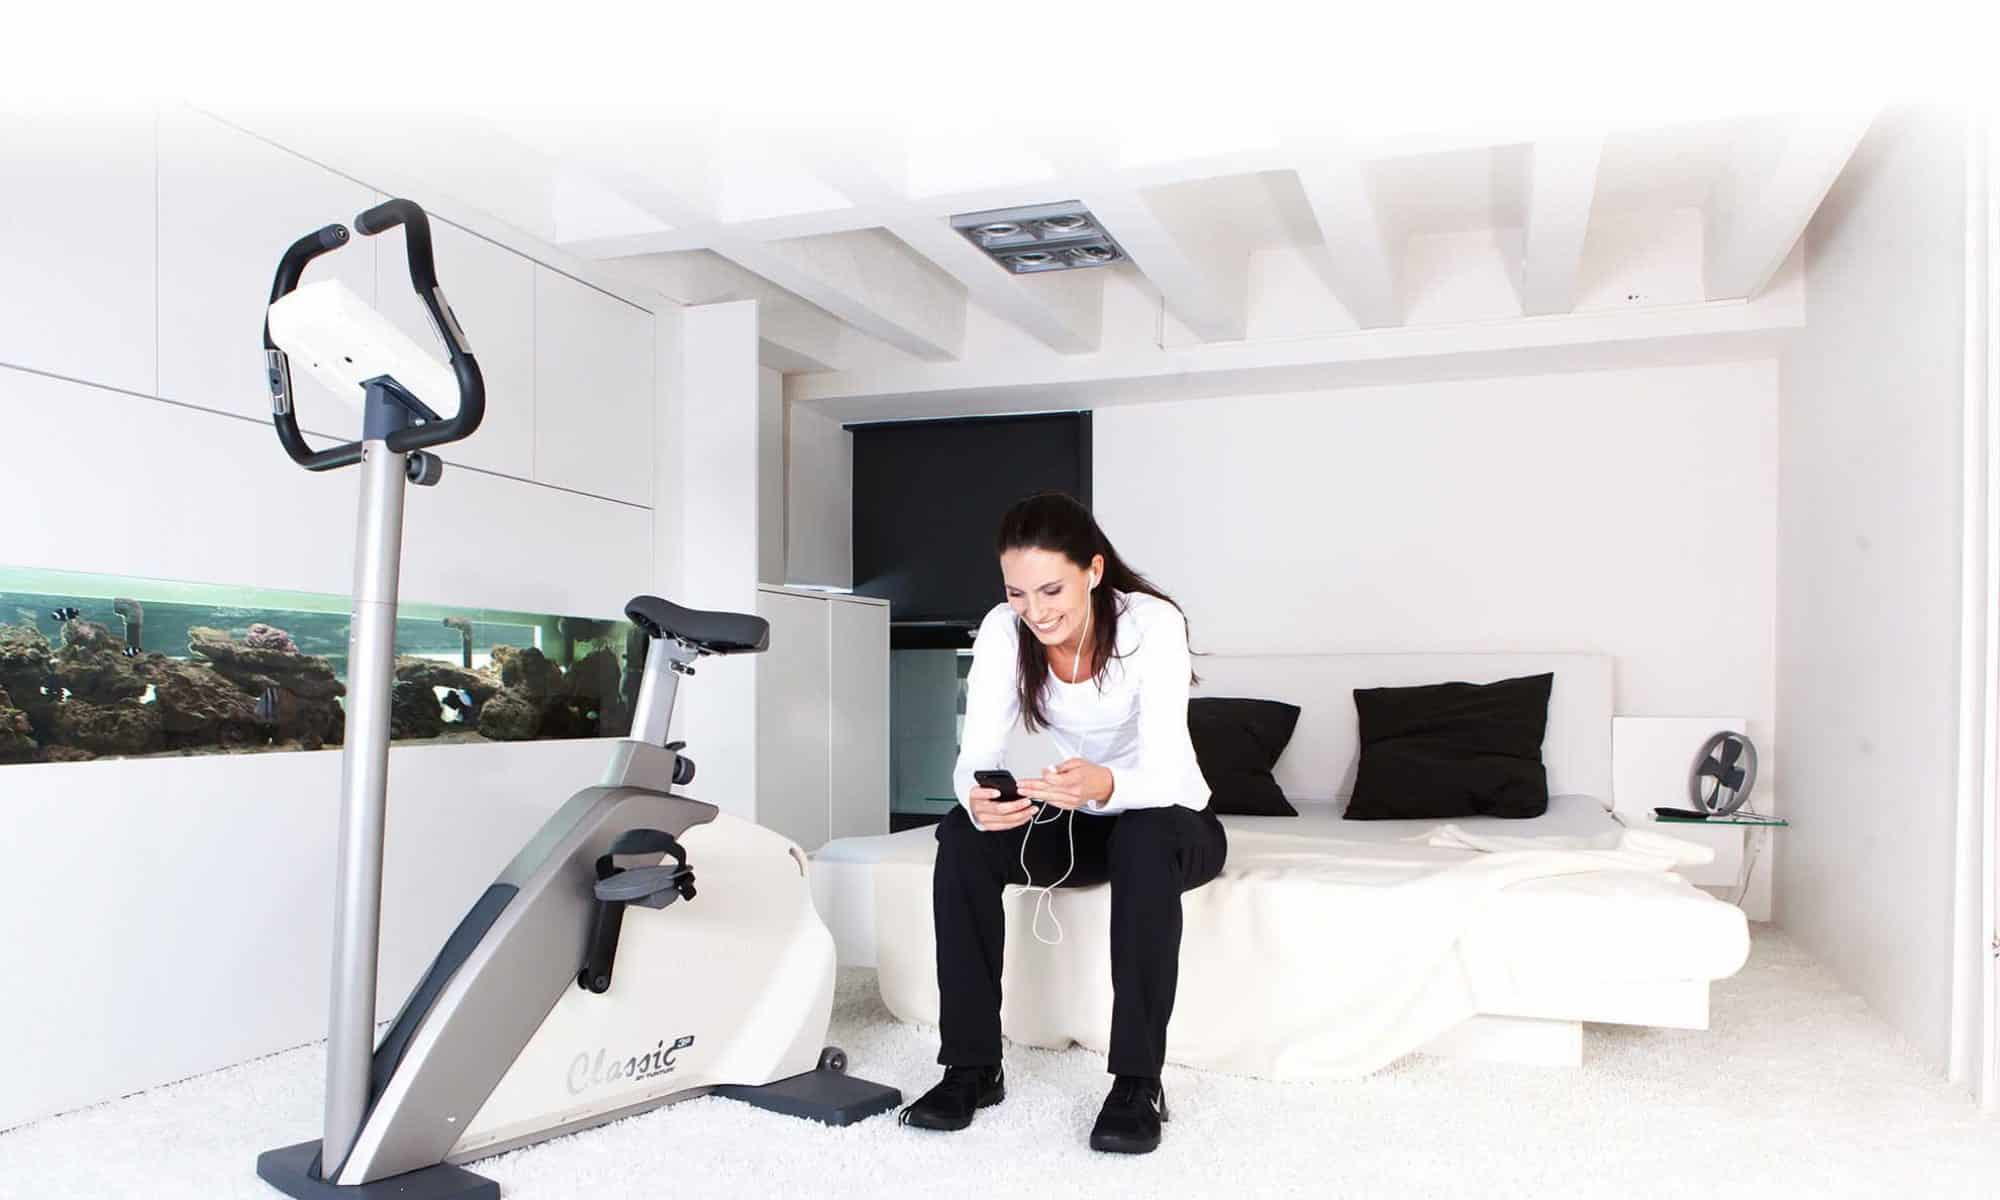 Hometrainer kopen - Reviews en Testen